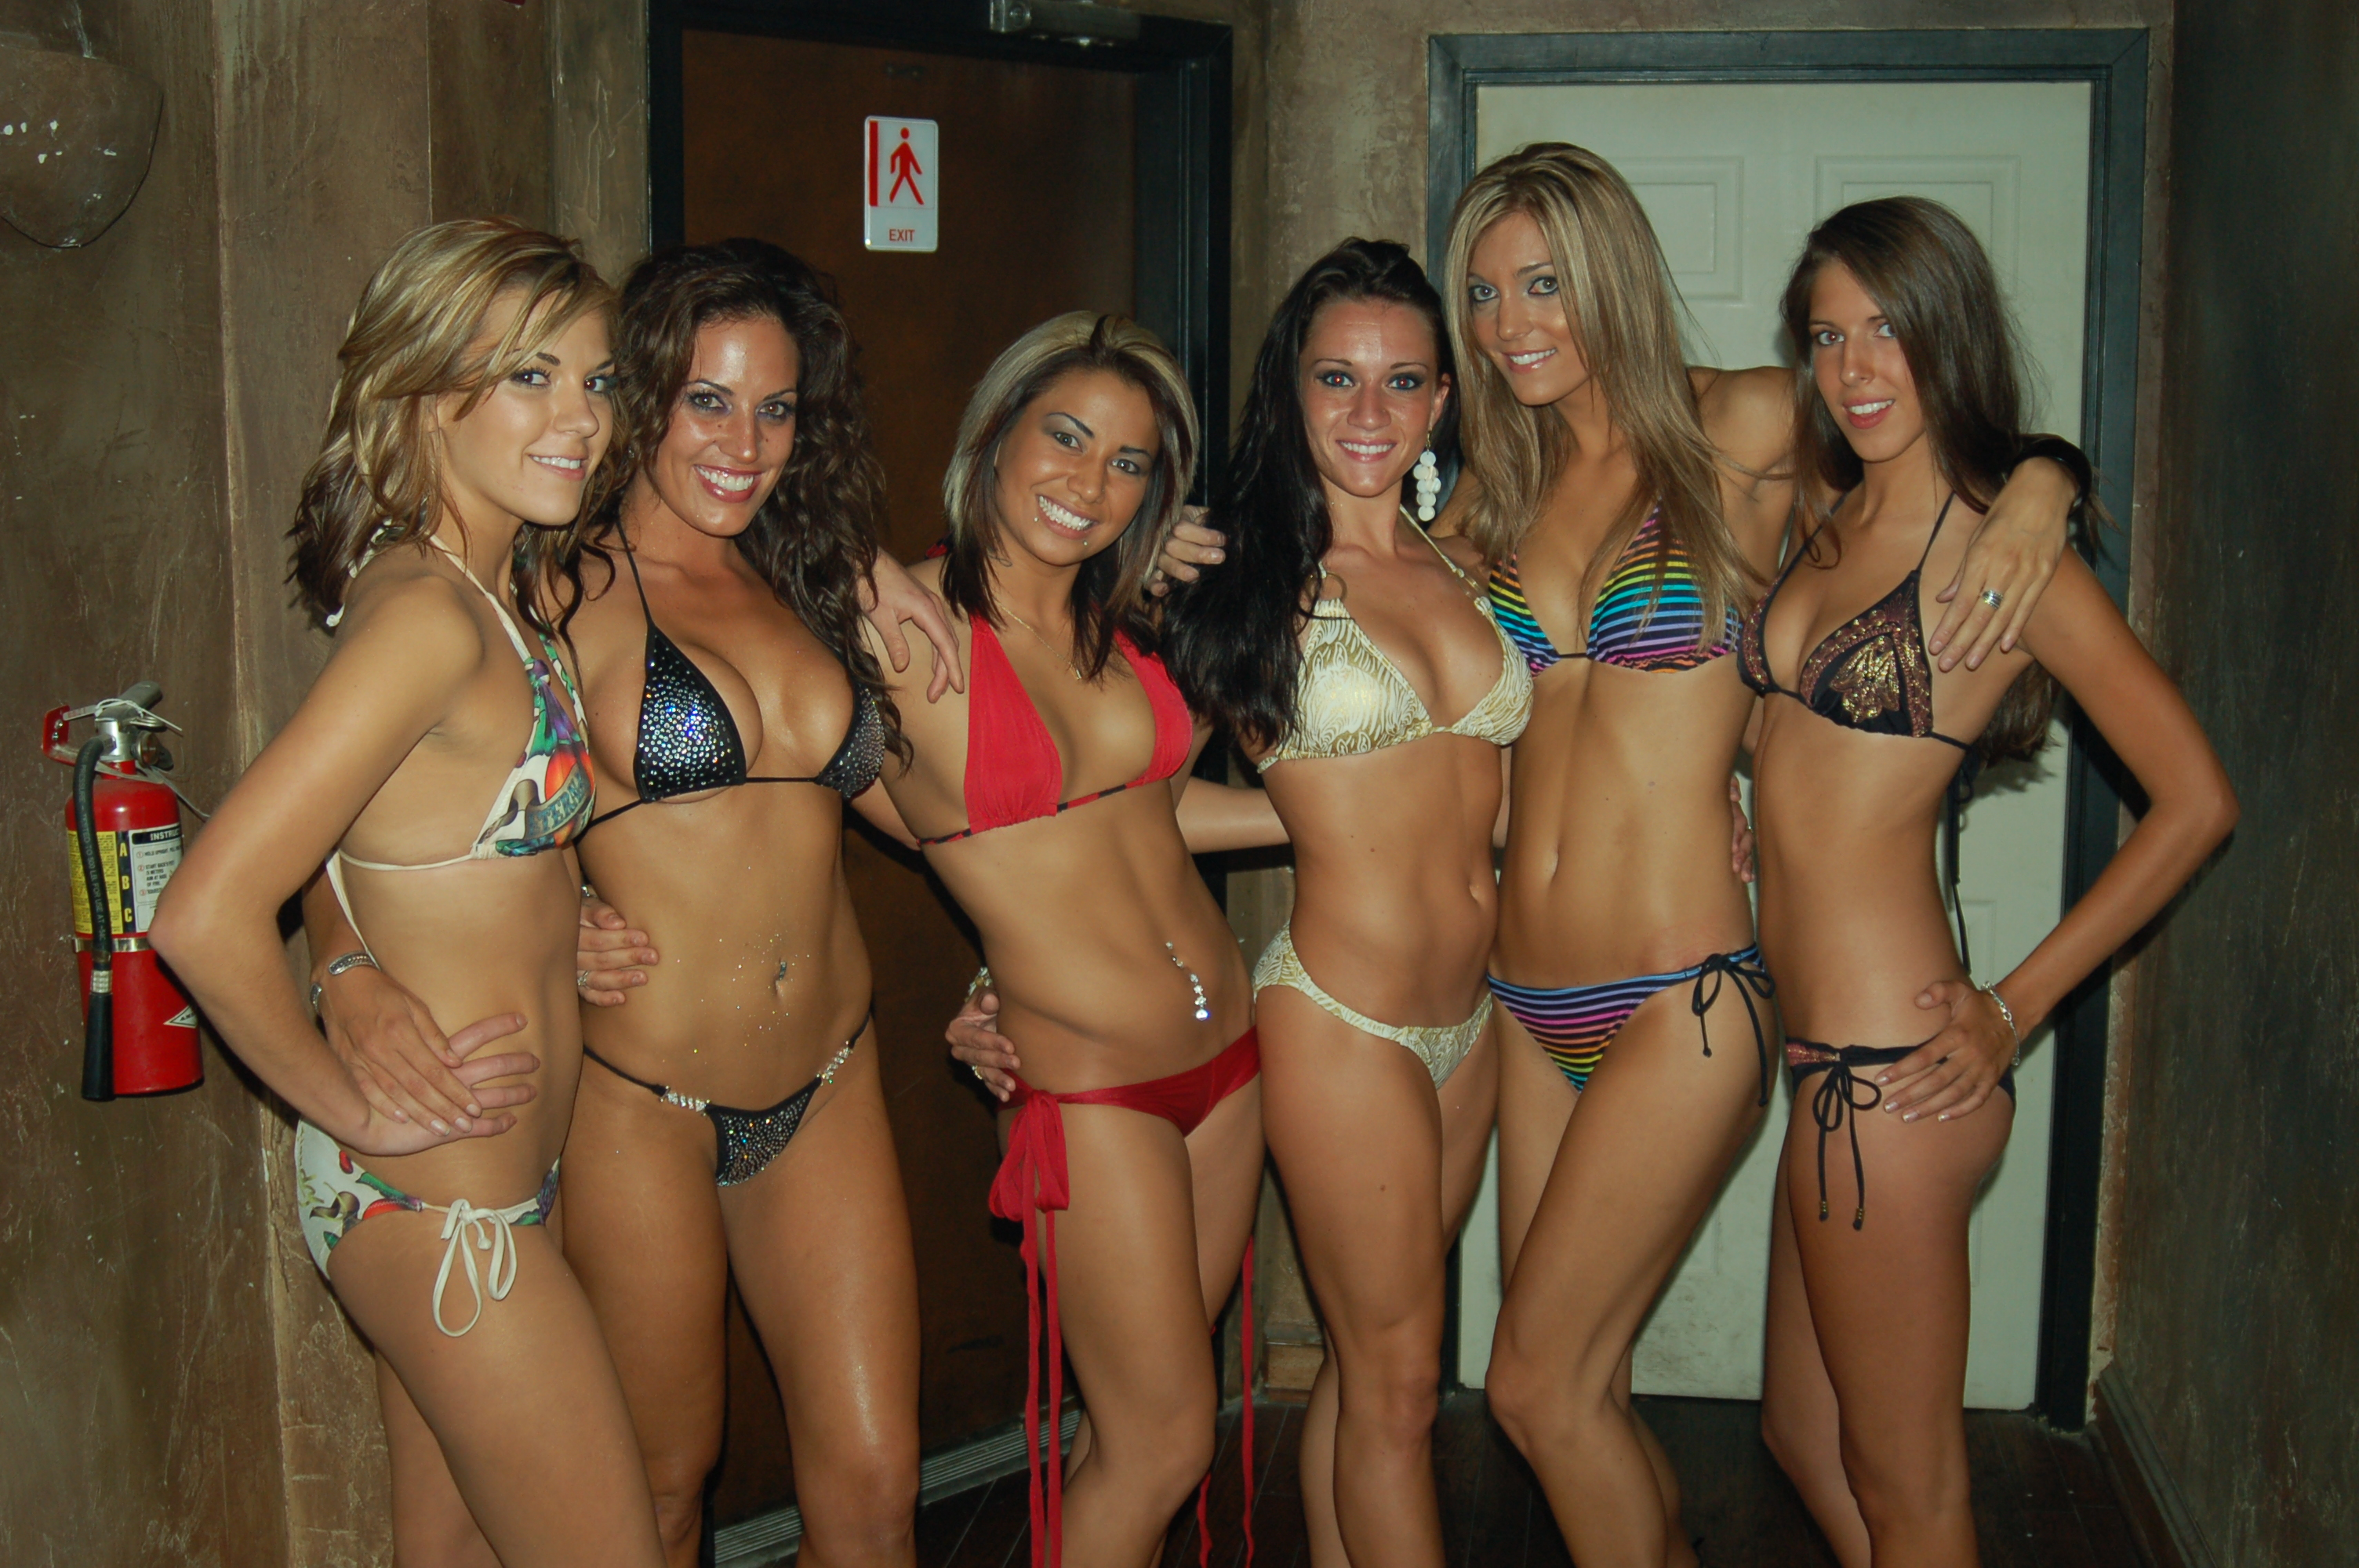 Description Group photo of women wearing bikinis.jpg